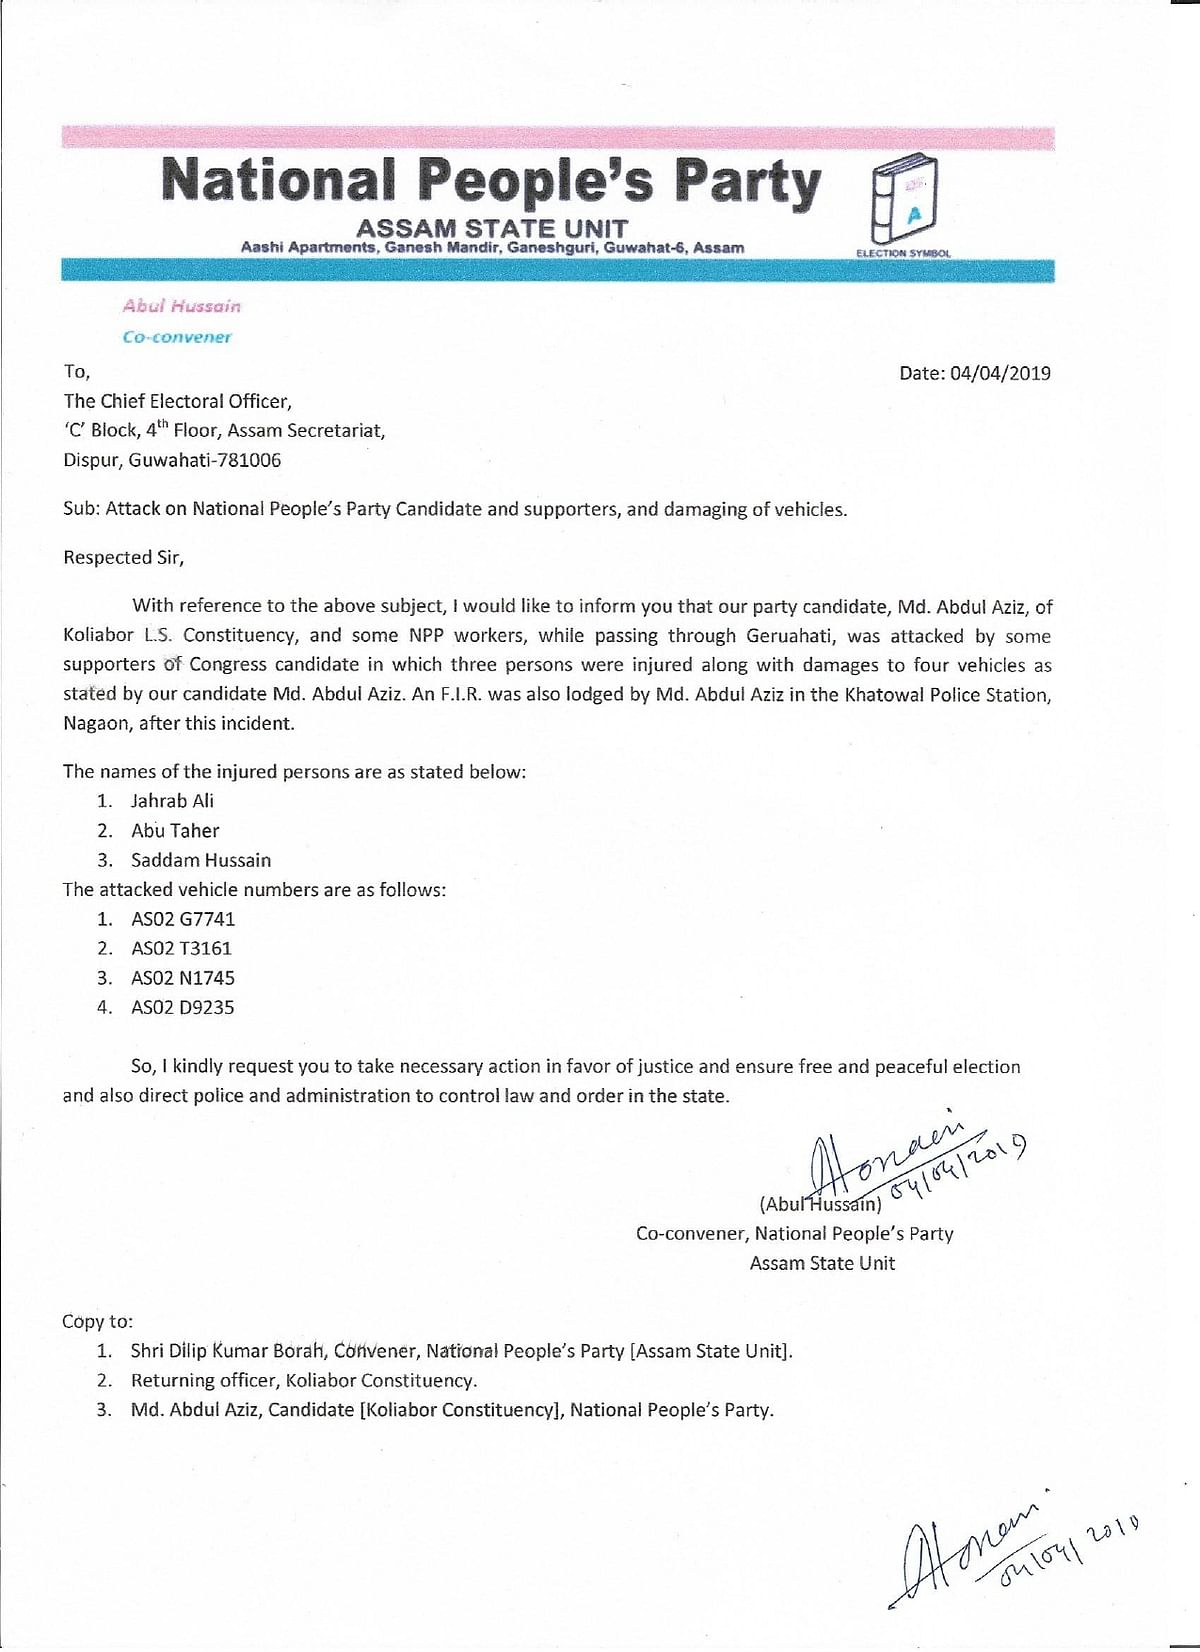 NPP complaint letter to Chief Electoral Officer, Dispur, Assam